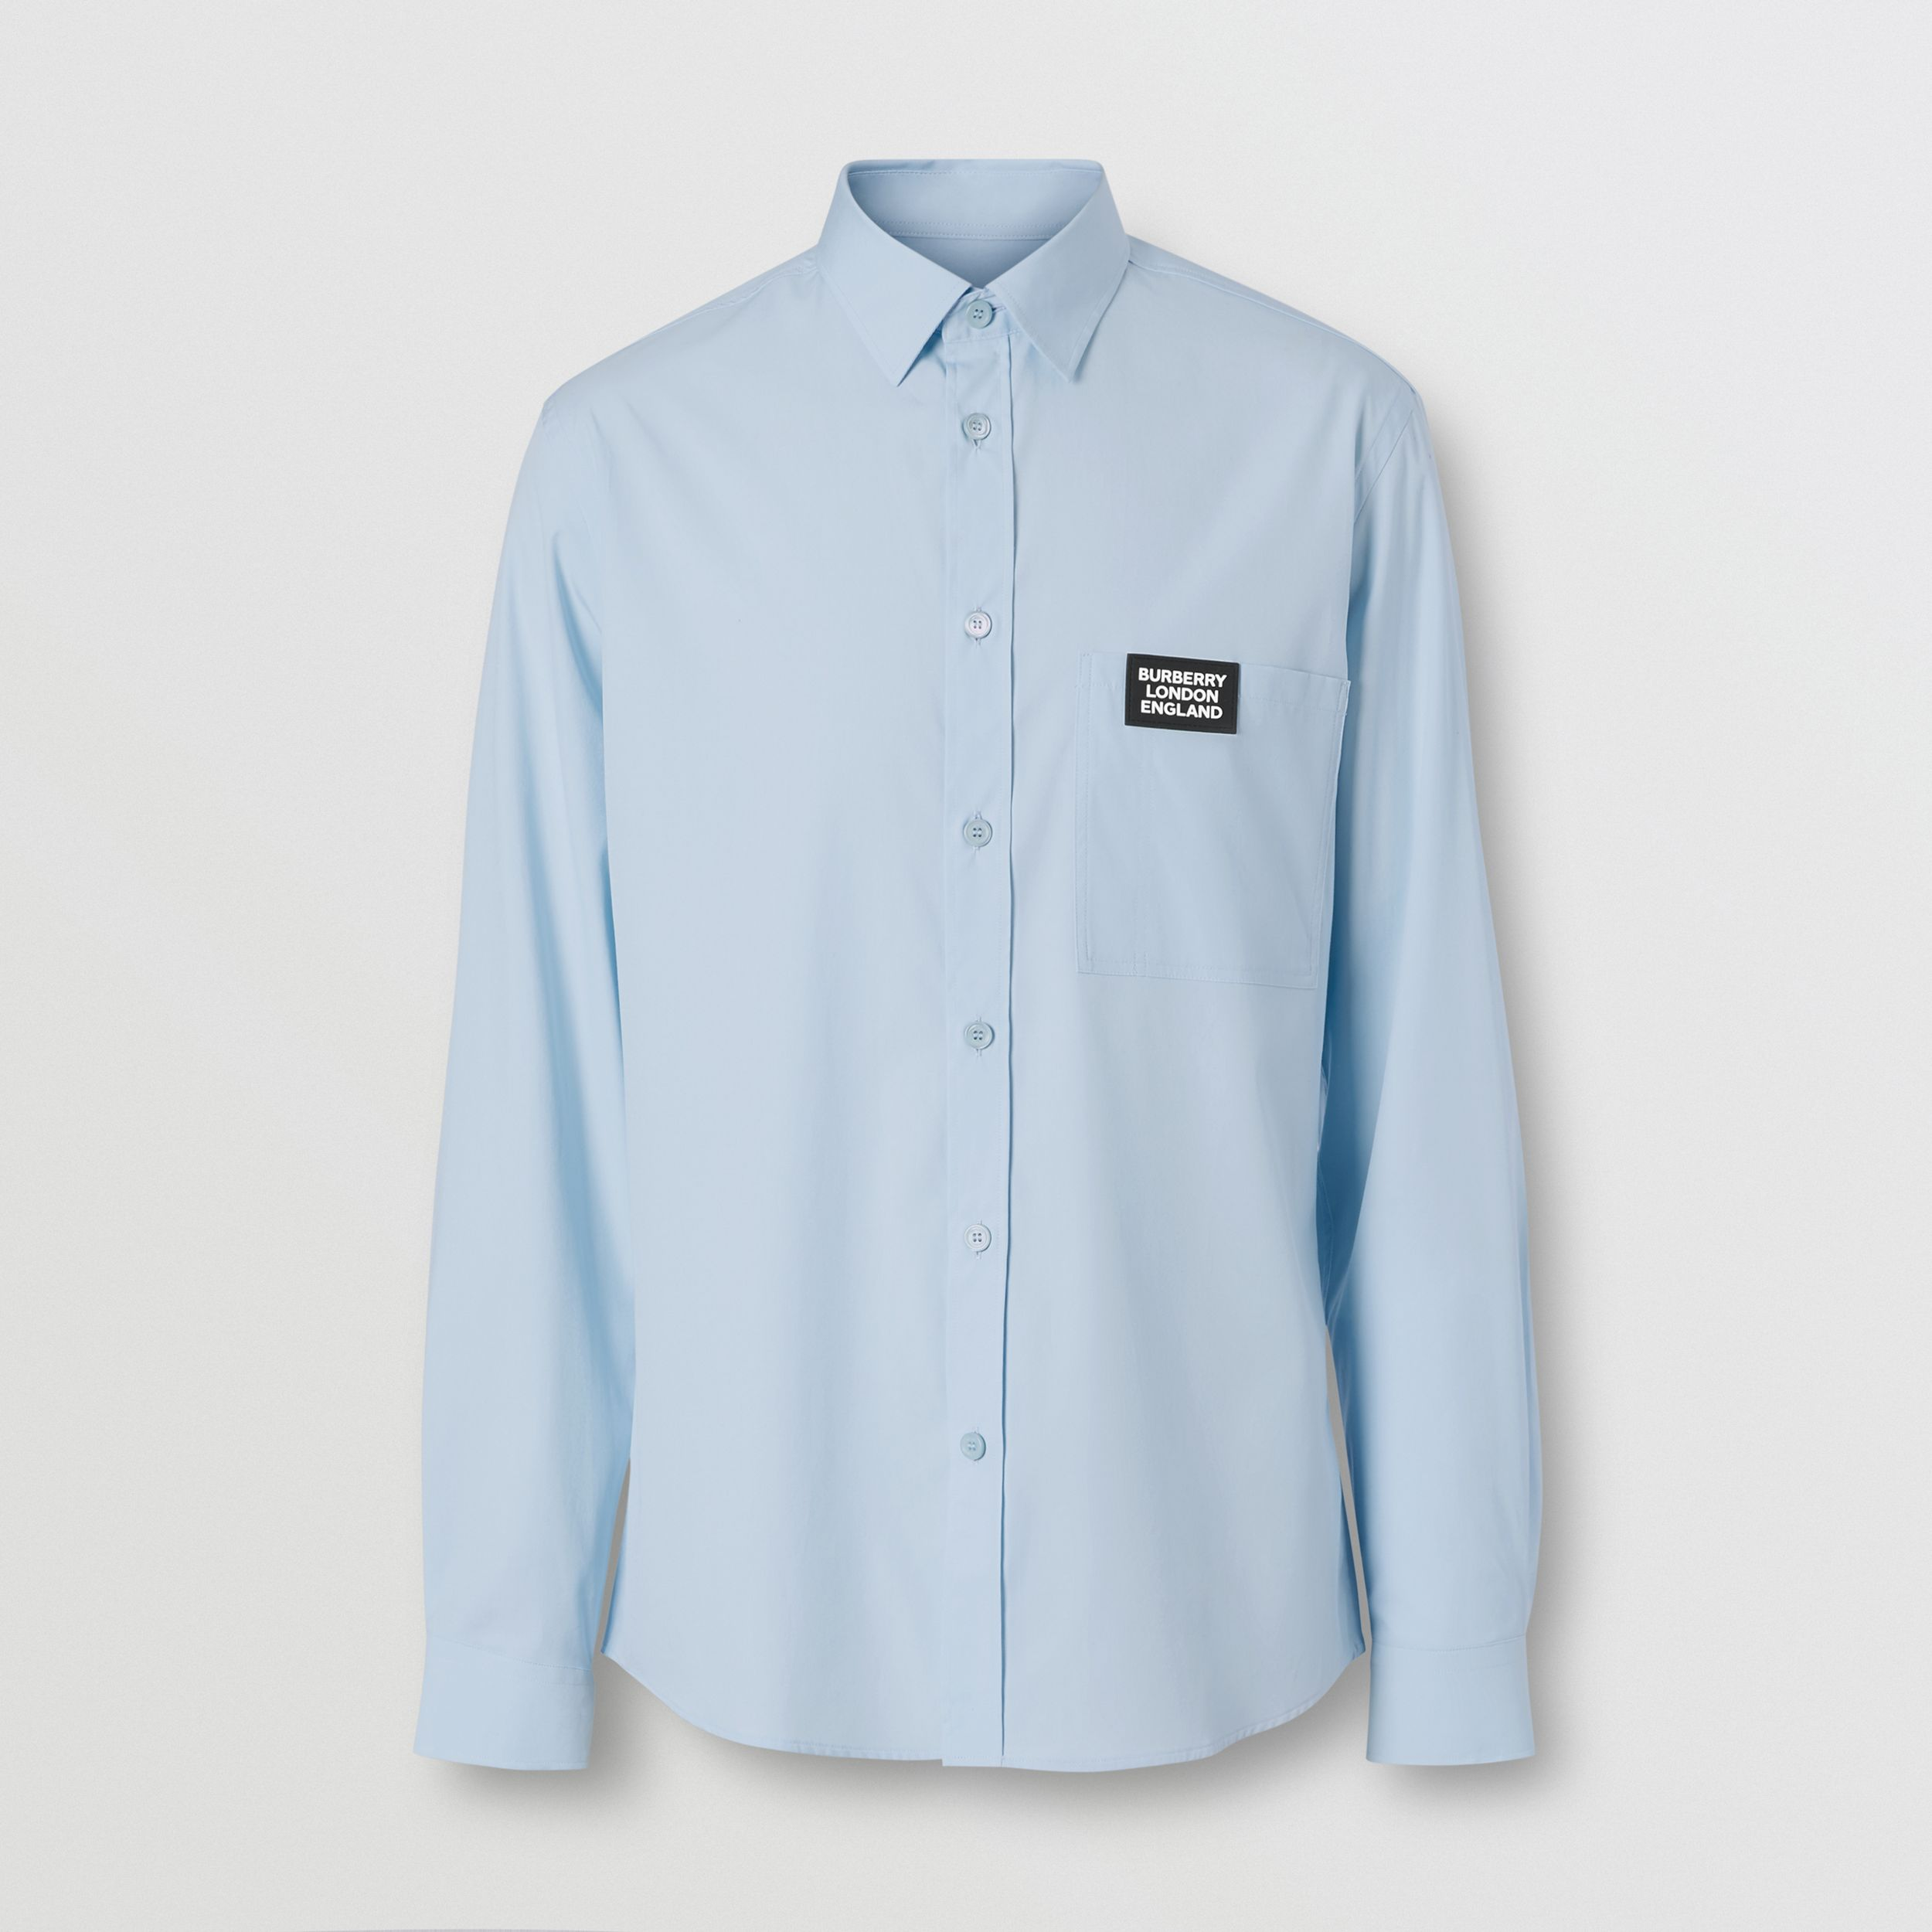 Logo Detail Stretch Cotton Poplin Shirt in Pale Blue - Men | Burberry - 4